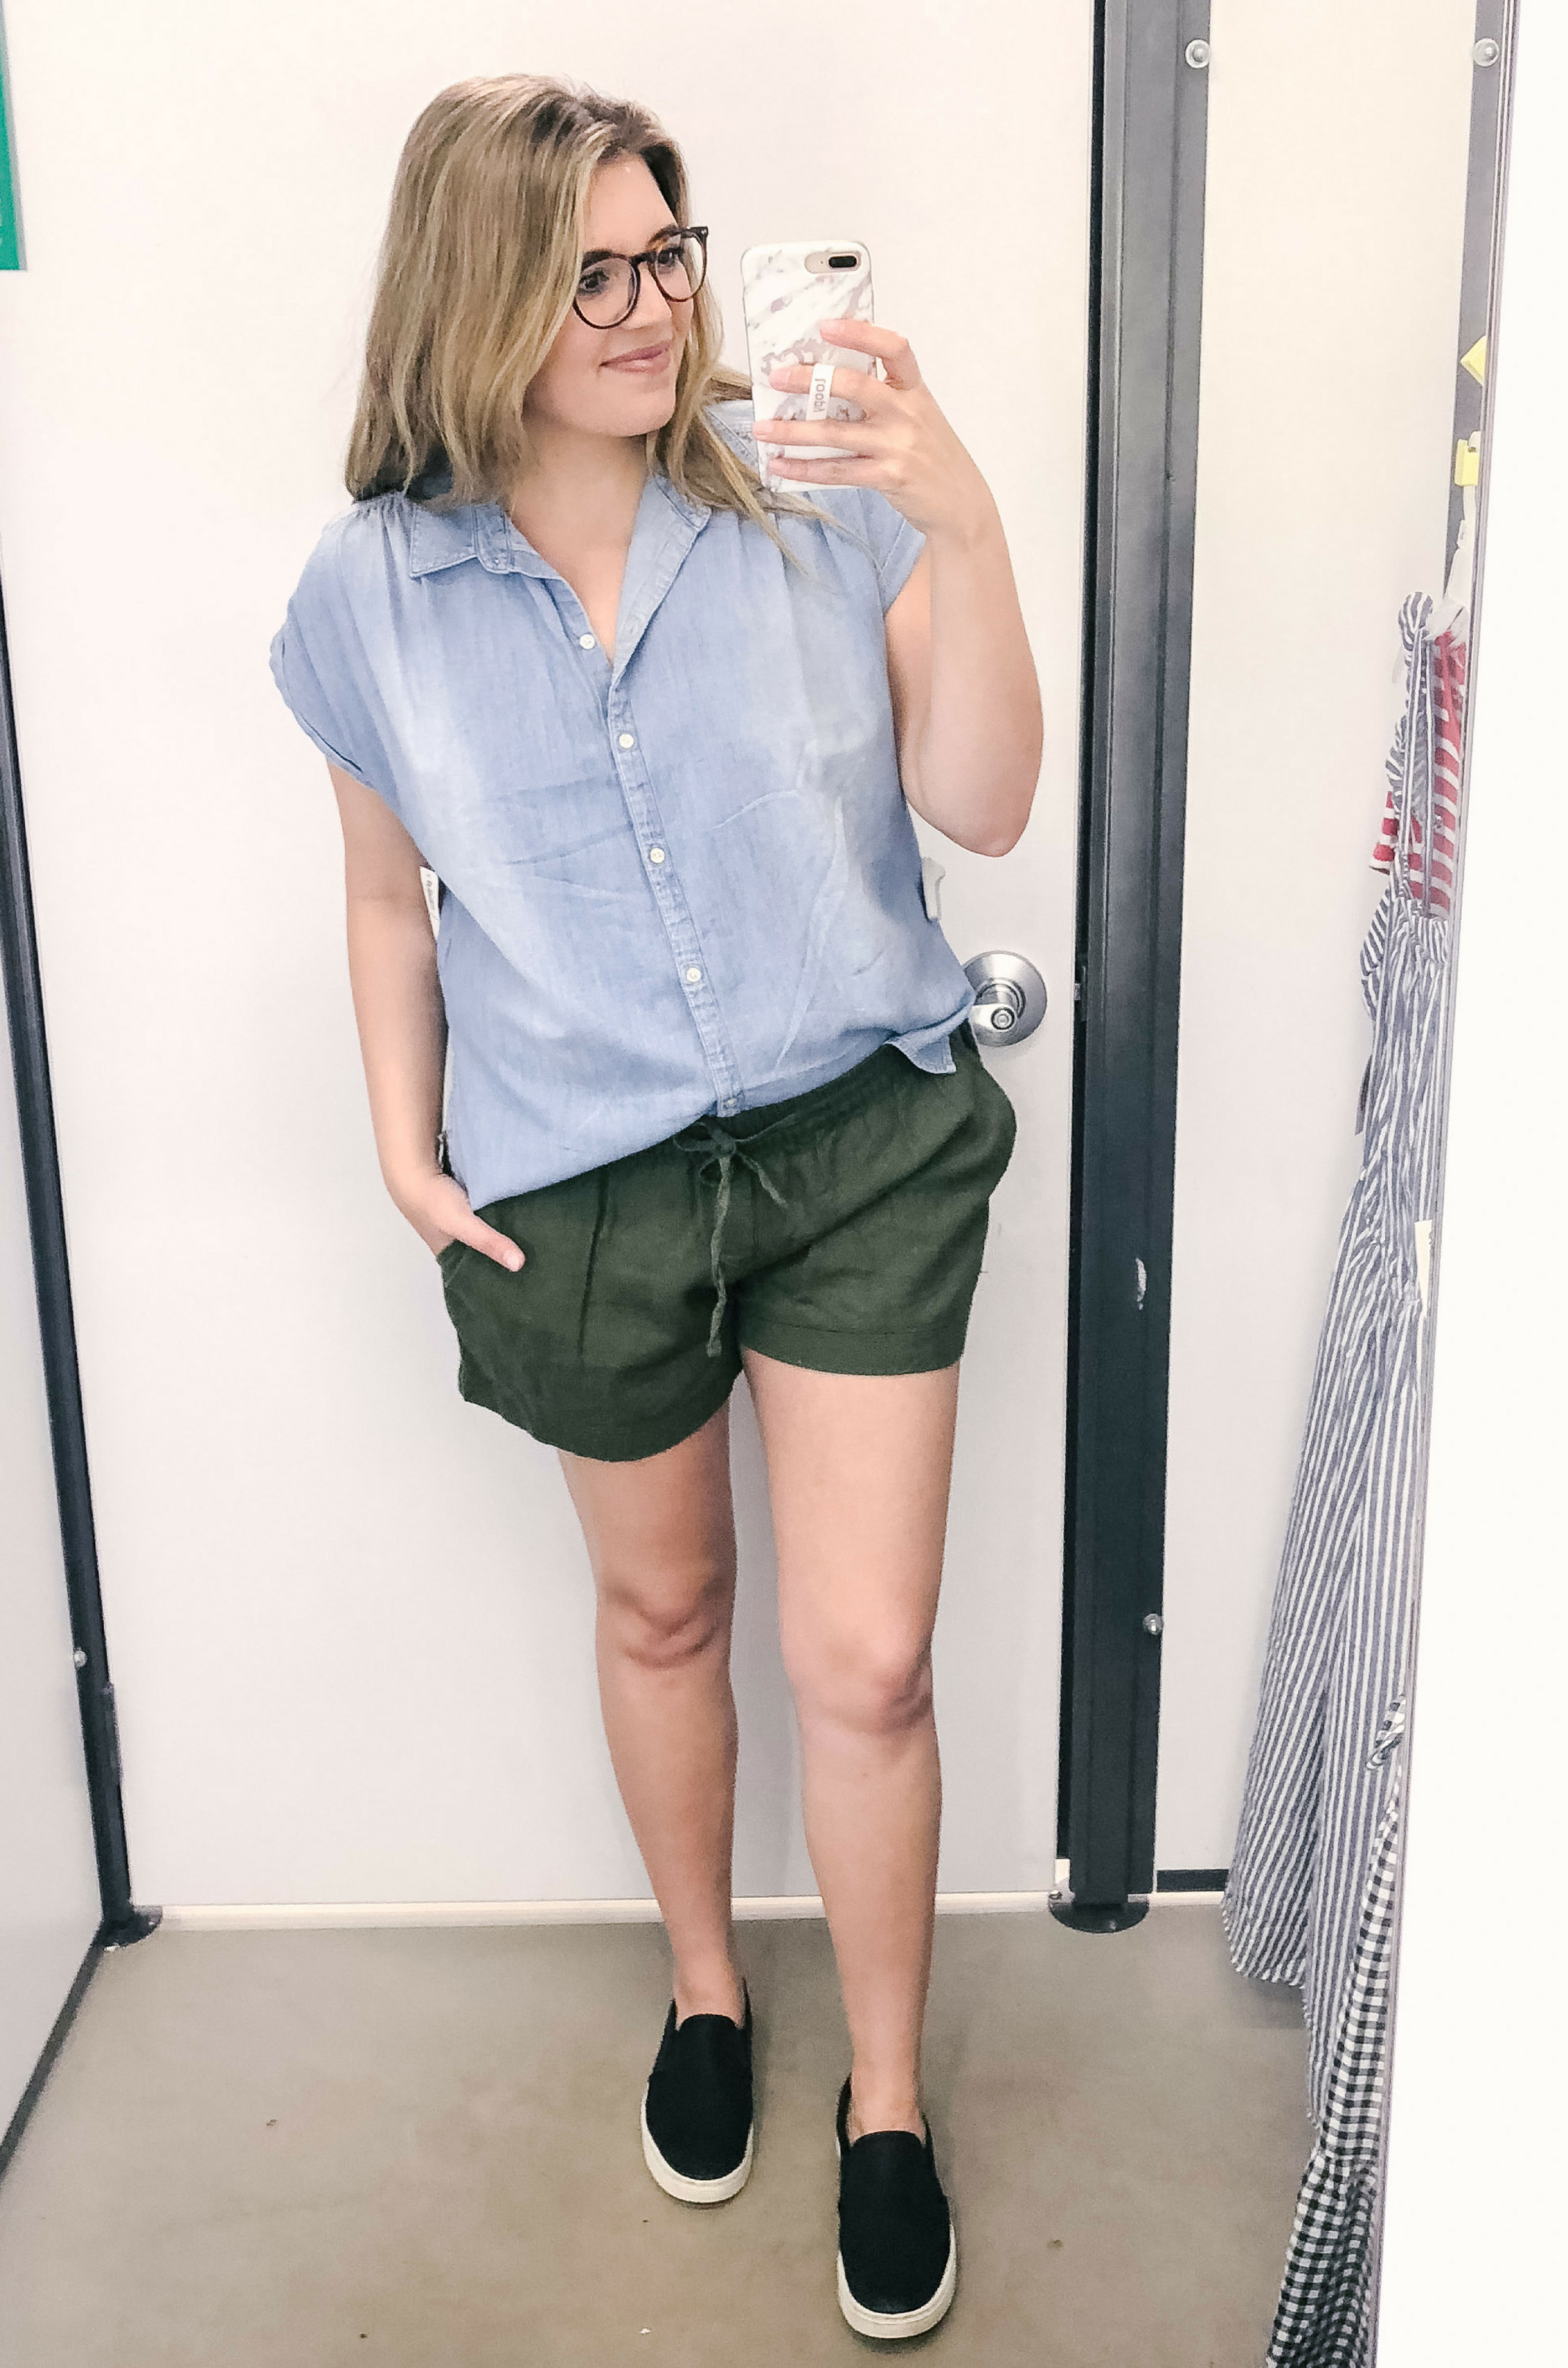 best mom shorts - sharing my tried and true mom shorts that I love for comfort and length! See all five picks at bylaurenm.com!